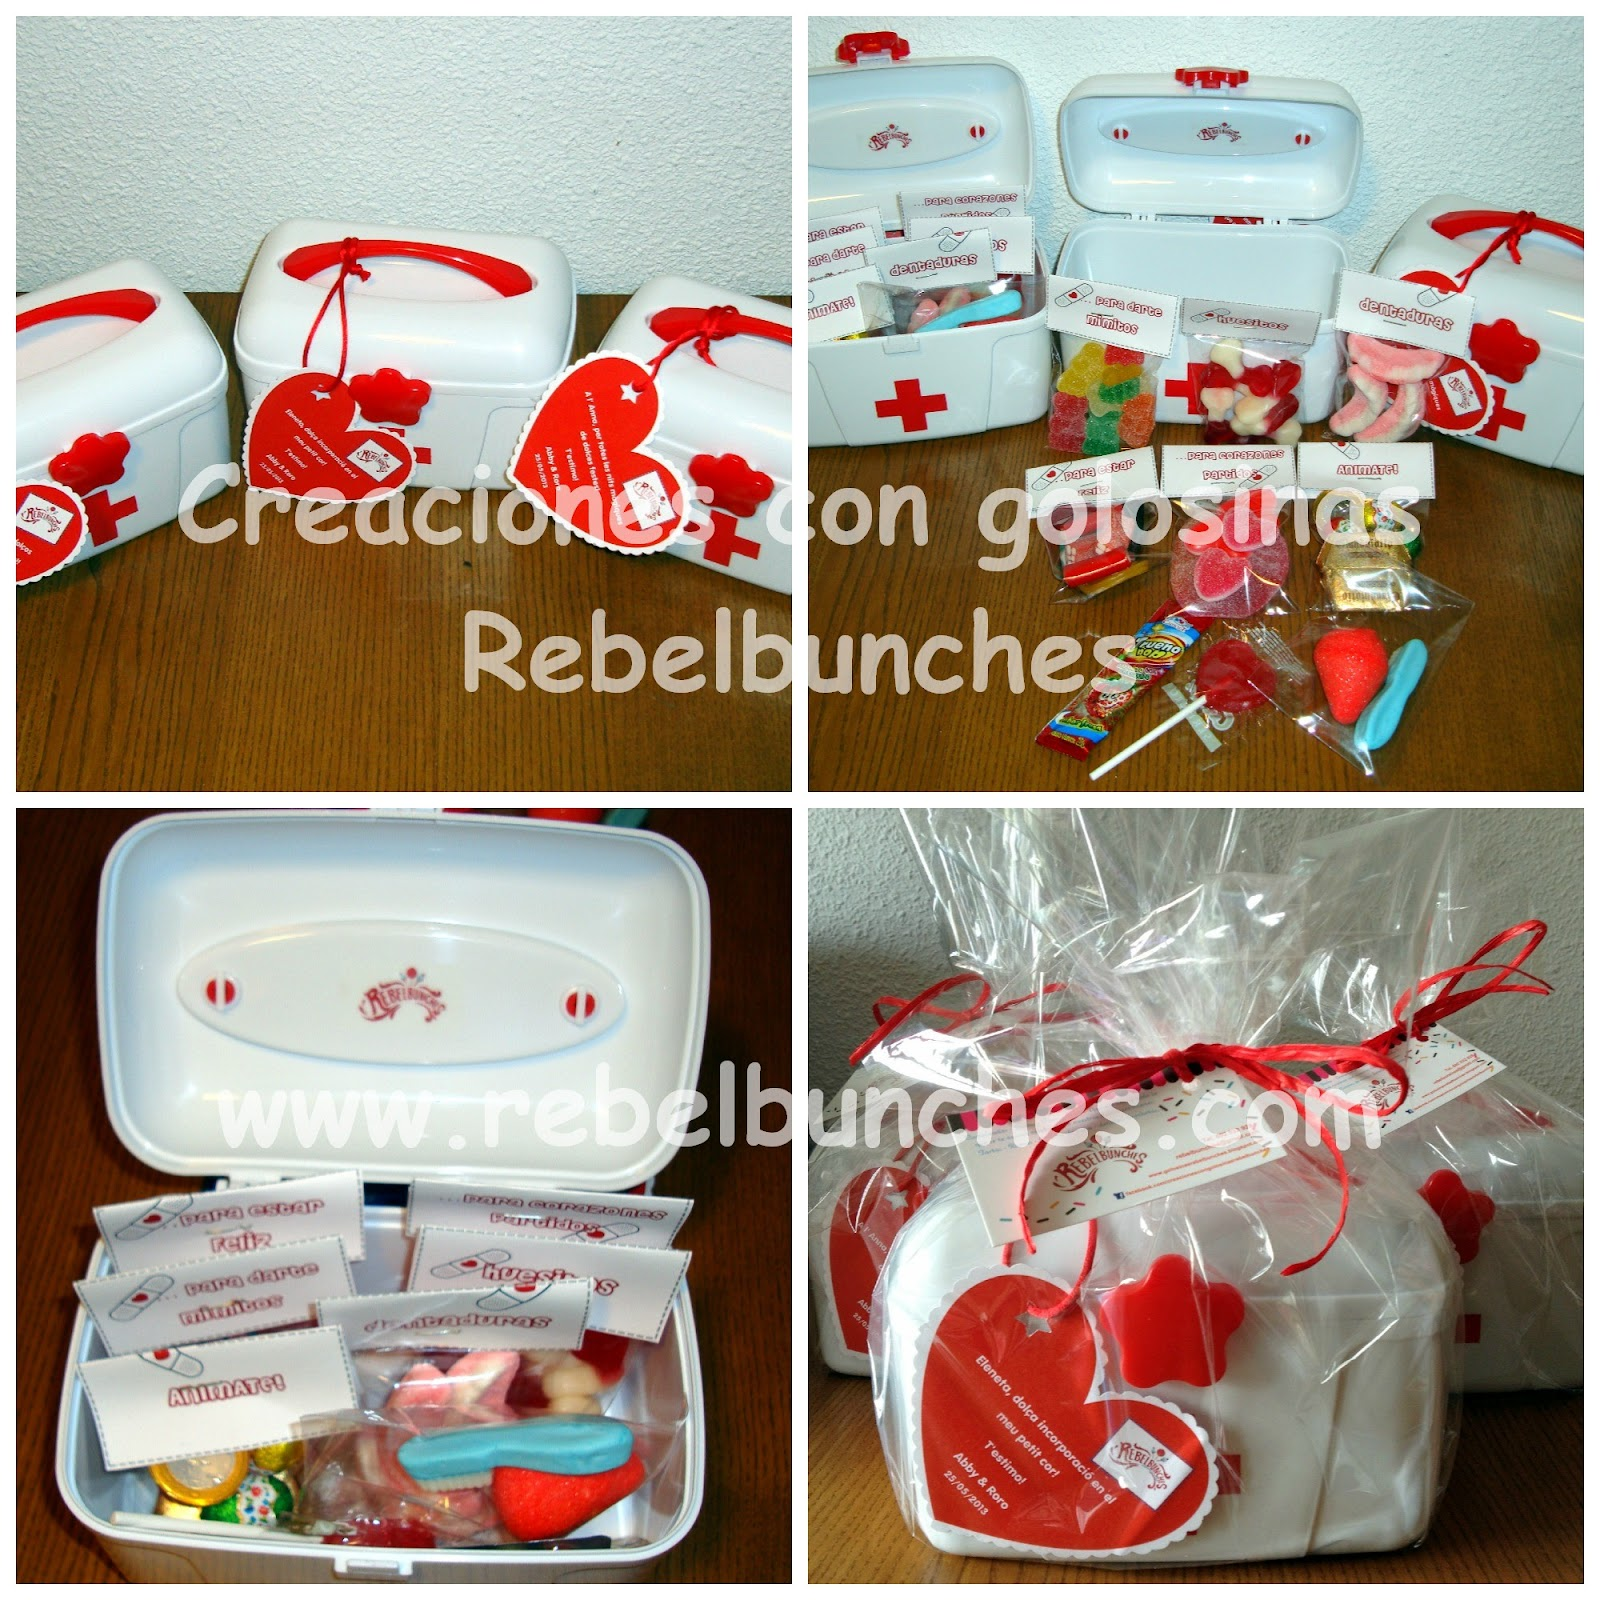 Rebelbunches botiquines de chuches regalos especiales for Regalo para amigas especiales boda